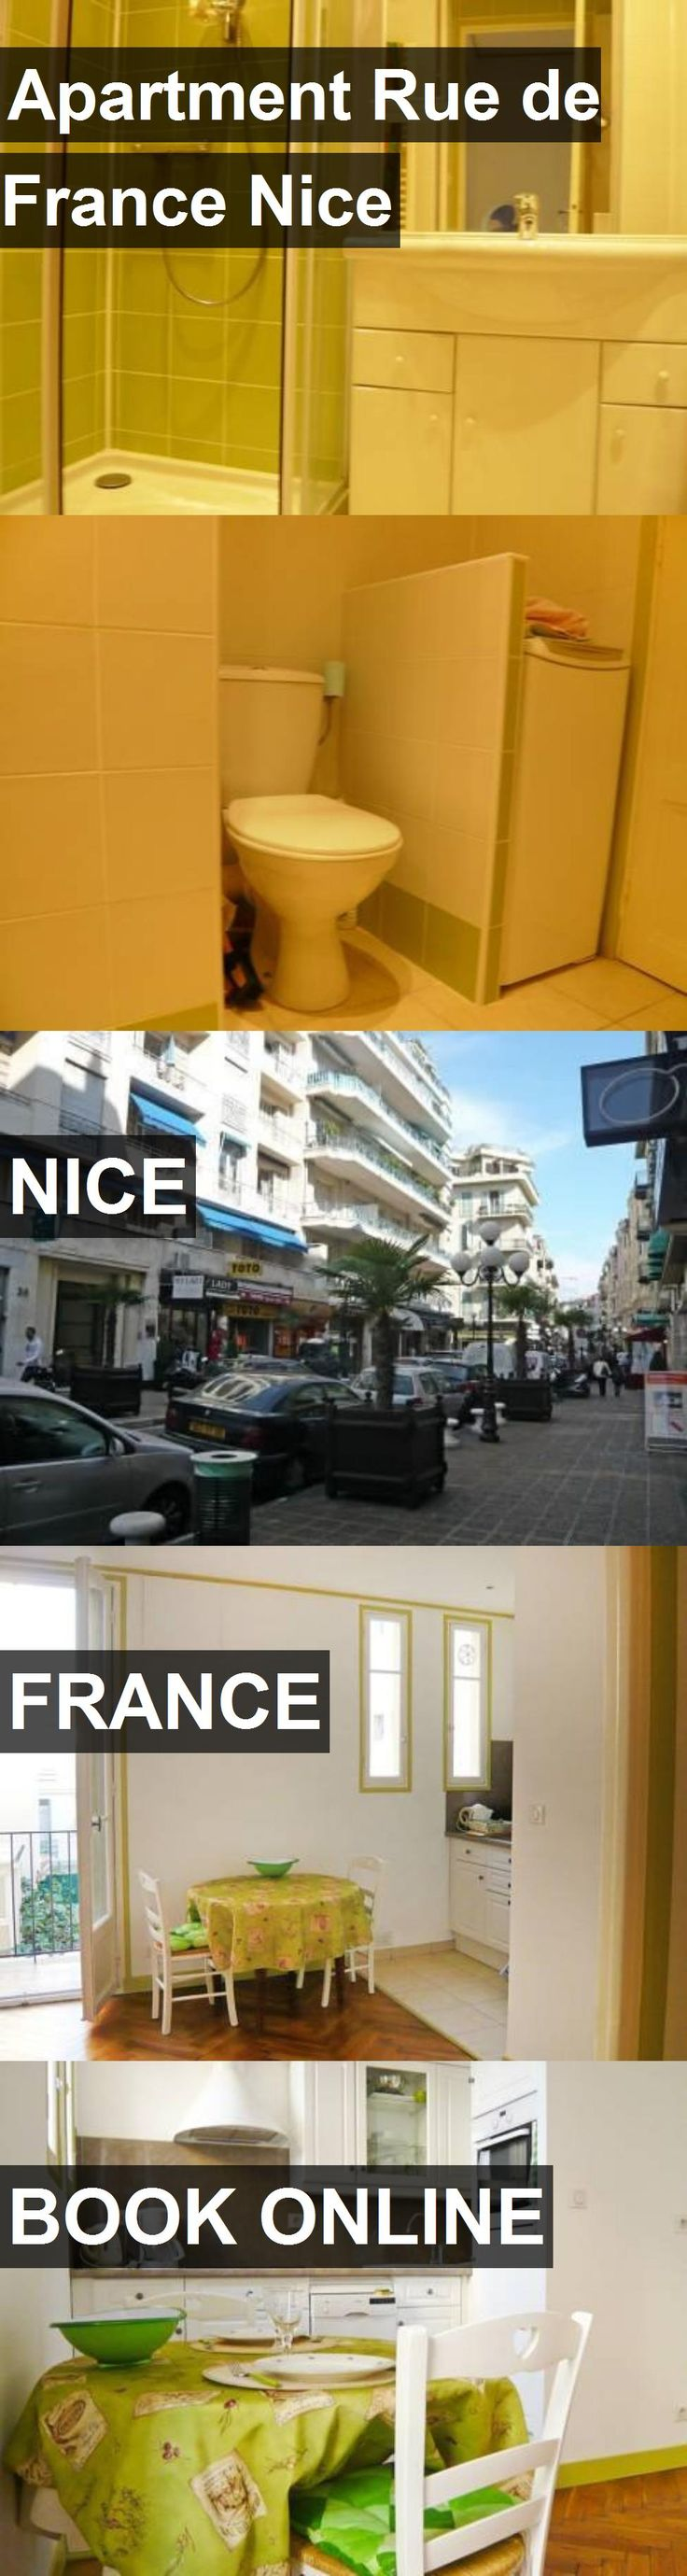 Hotel Apartment Rue de France Nice in Nice, France. For more information, photos, reviews and best prices please follow the link. #France #Nice #ApartmentRuedeFranceNice #hotel #travel #vacation